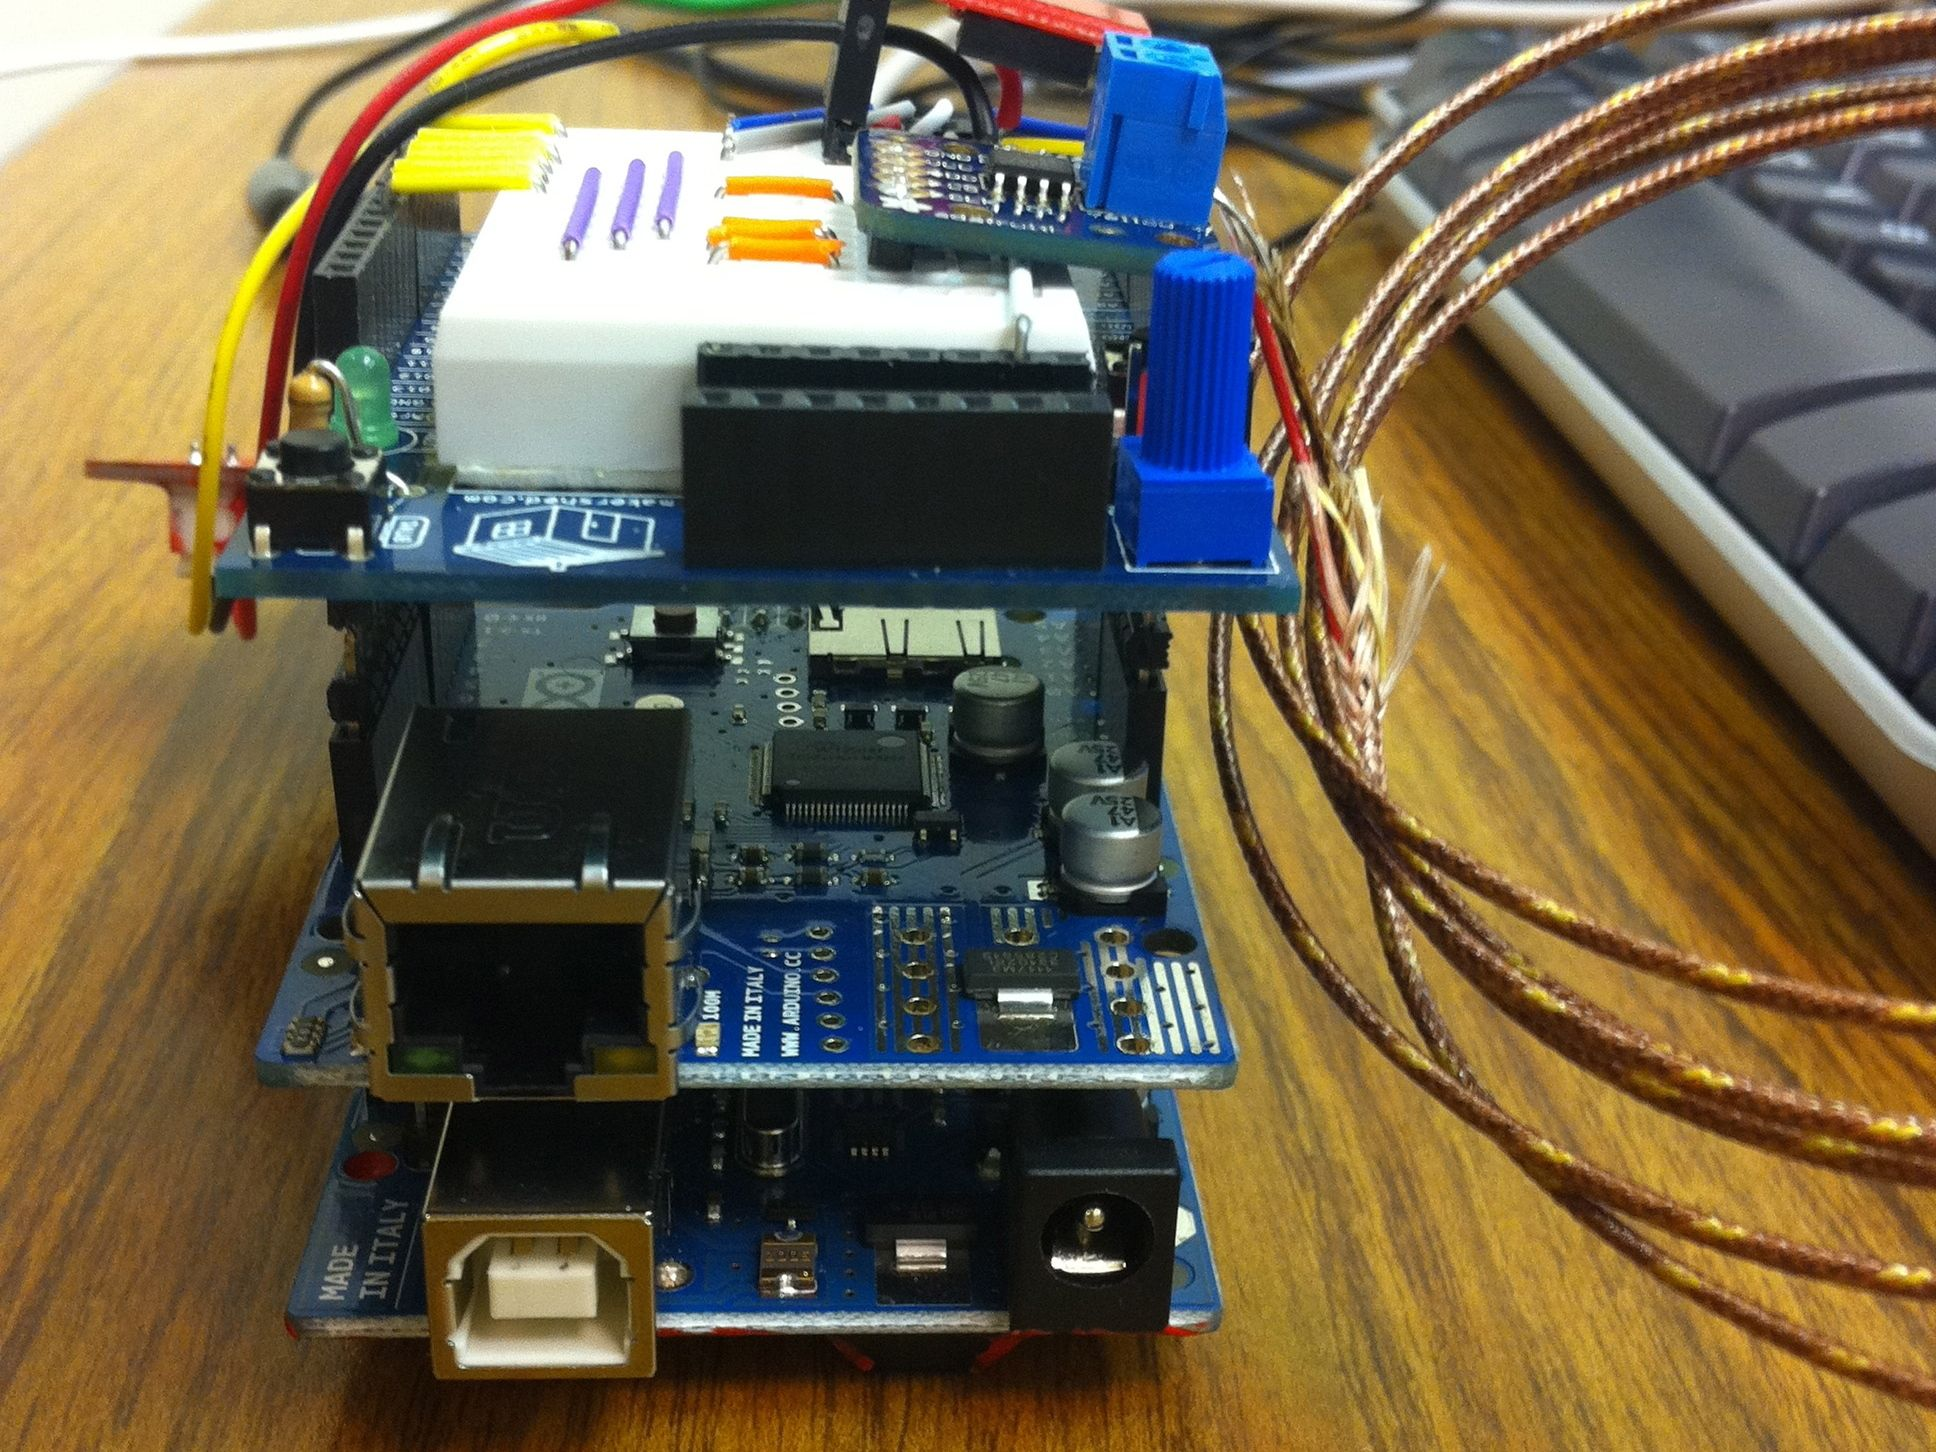 Arduino Temp Humidity Monitor With Web And Snmp Bldc Motor Controller Circuit Electronic Projects This Guide Will Show You How To Build The Write Program Your Own That Can Be Viewed Via Lcd Display